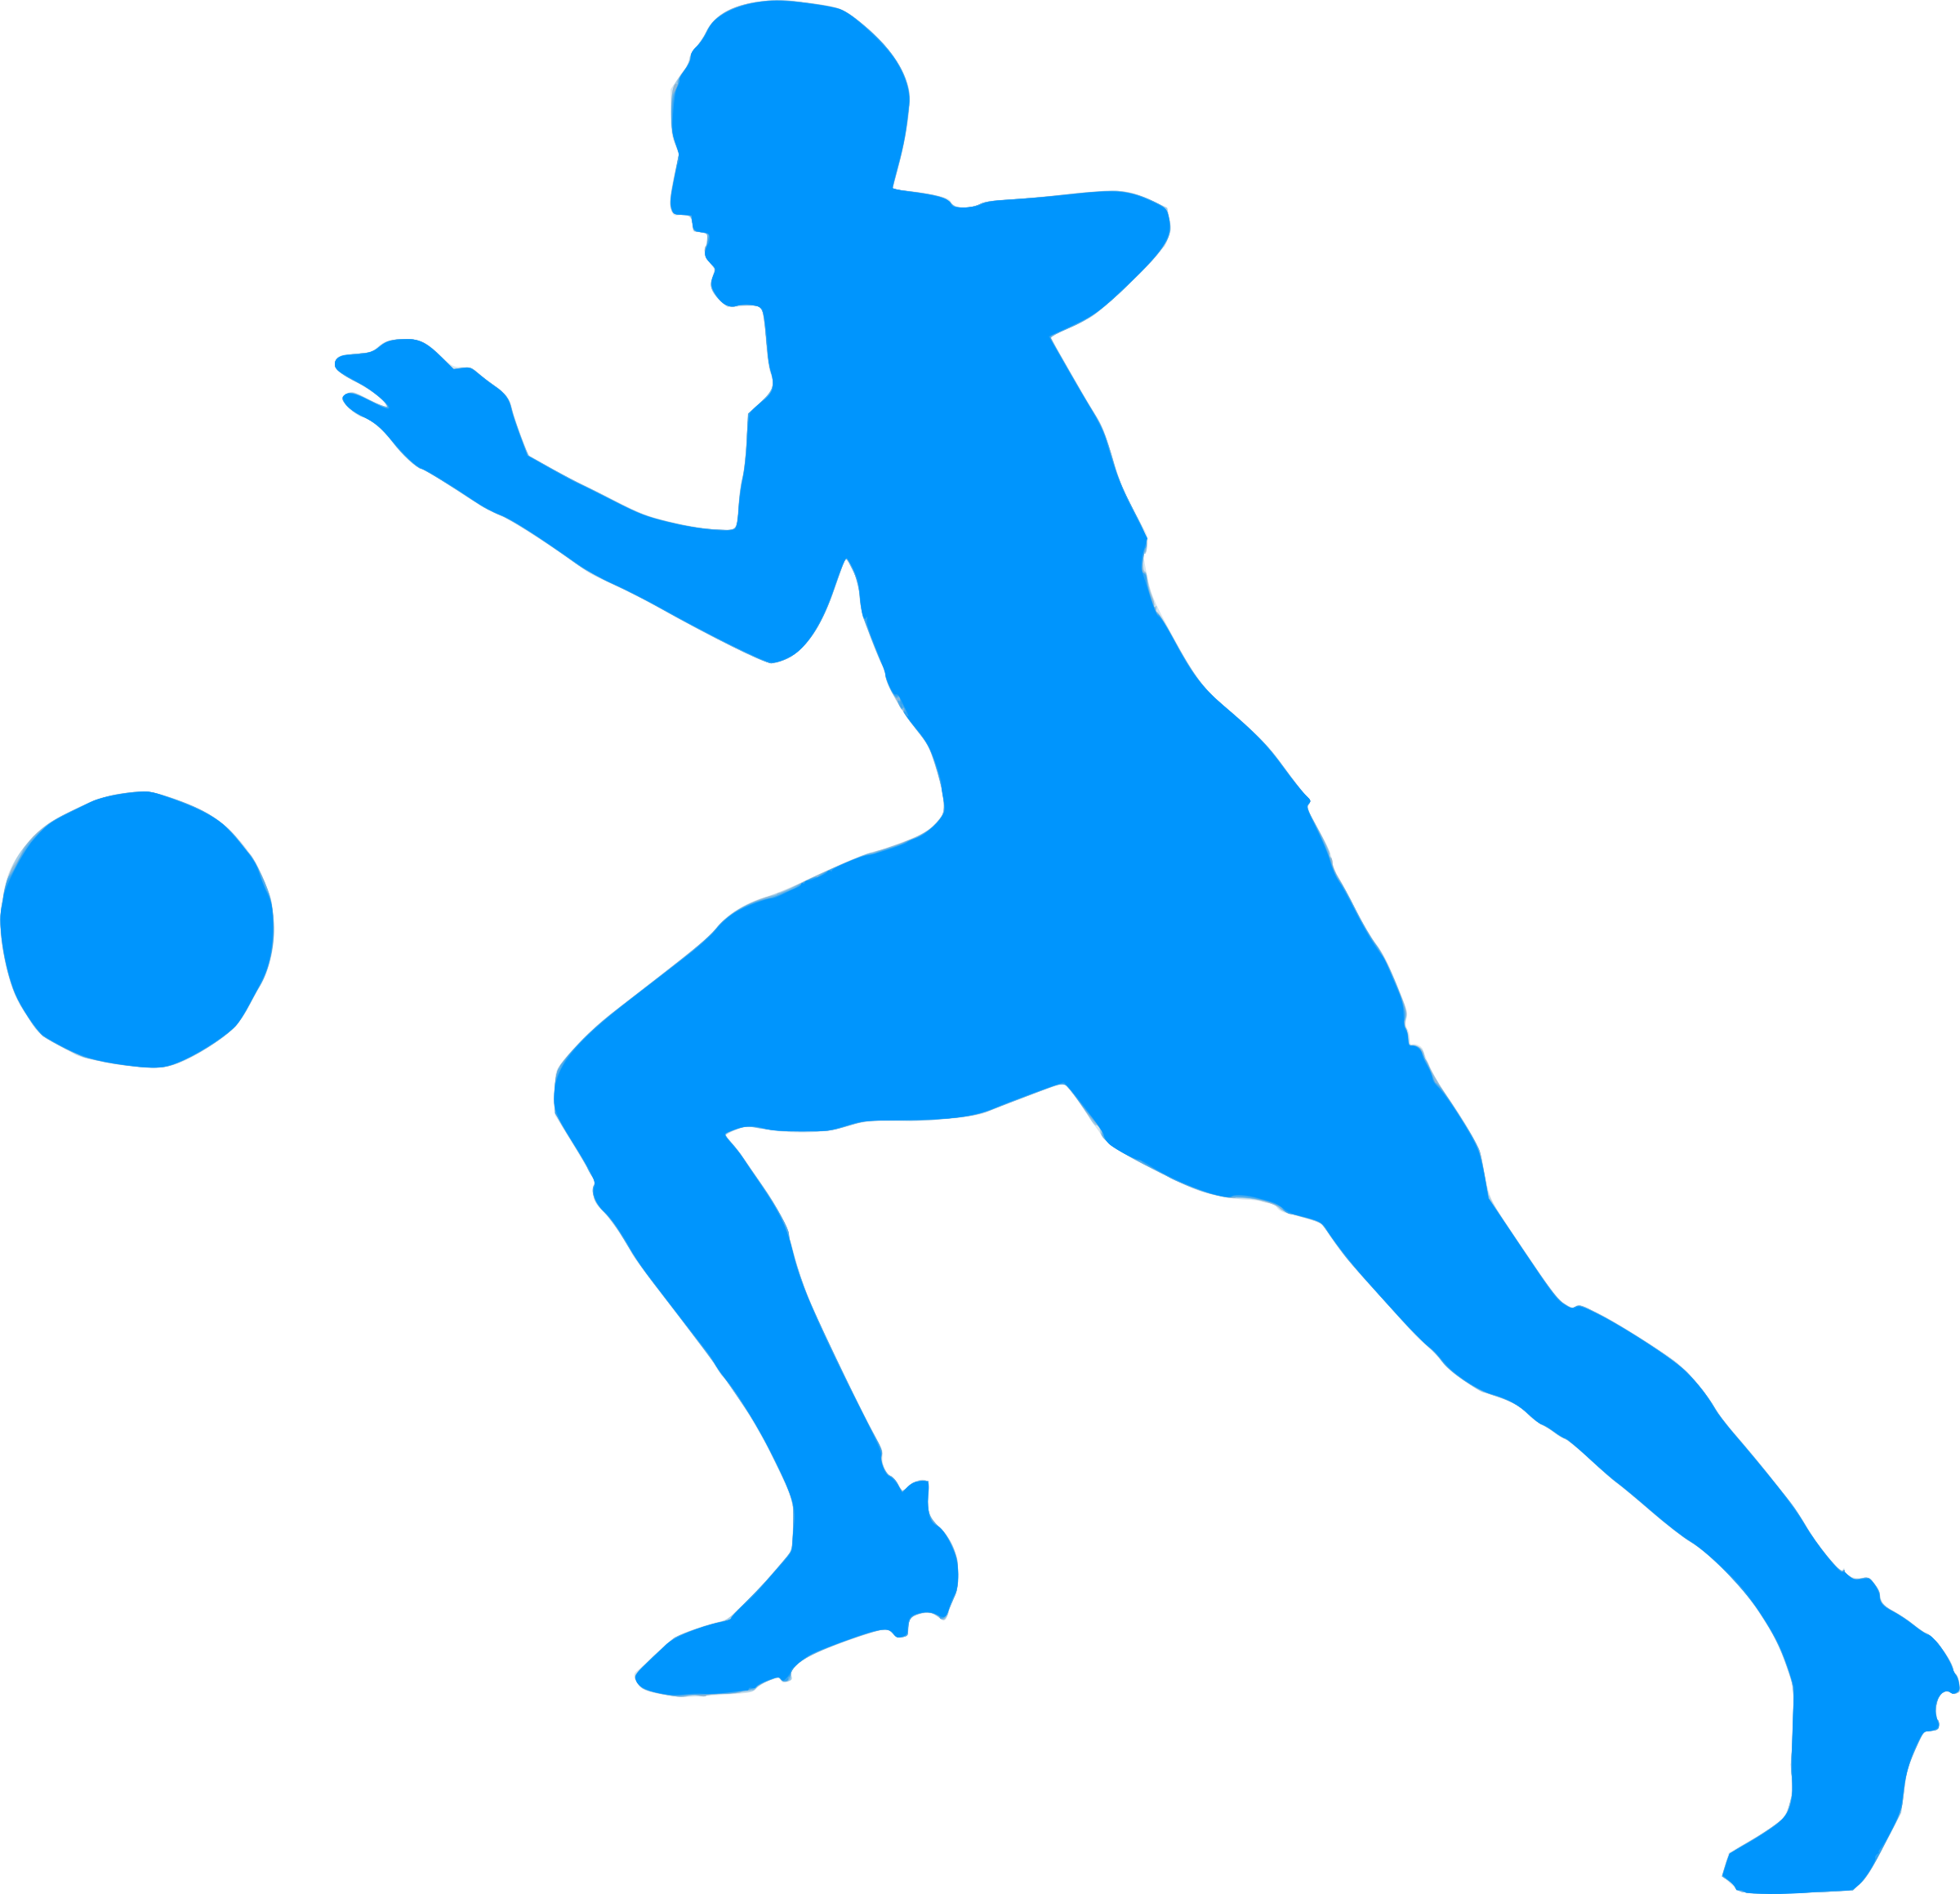 Football silhouette clipart clip art library download Silhouette Football 03 Icons PNG - Free PNG and Icons Downloads clip art library download